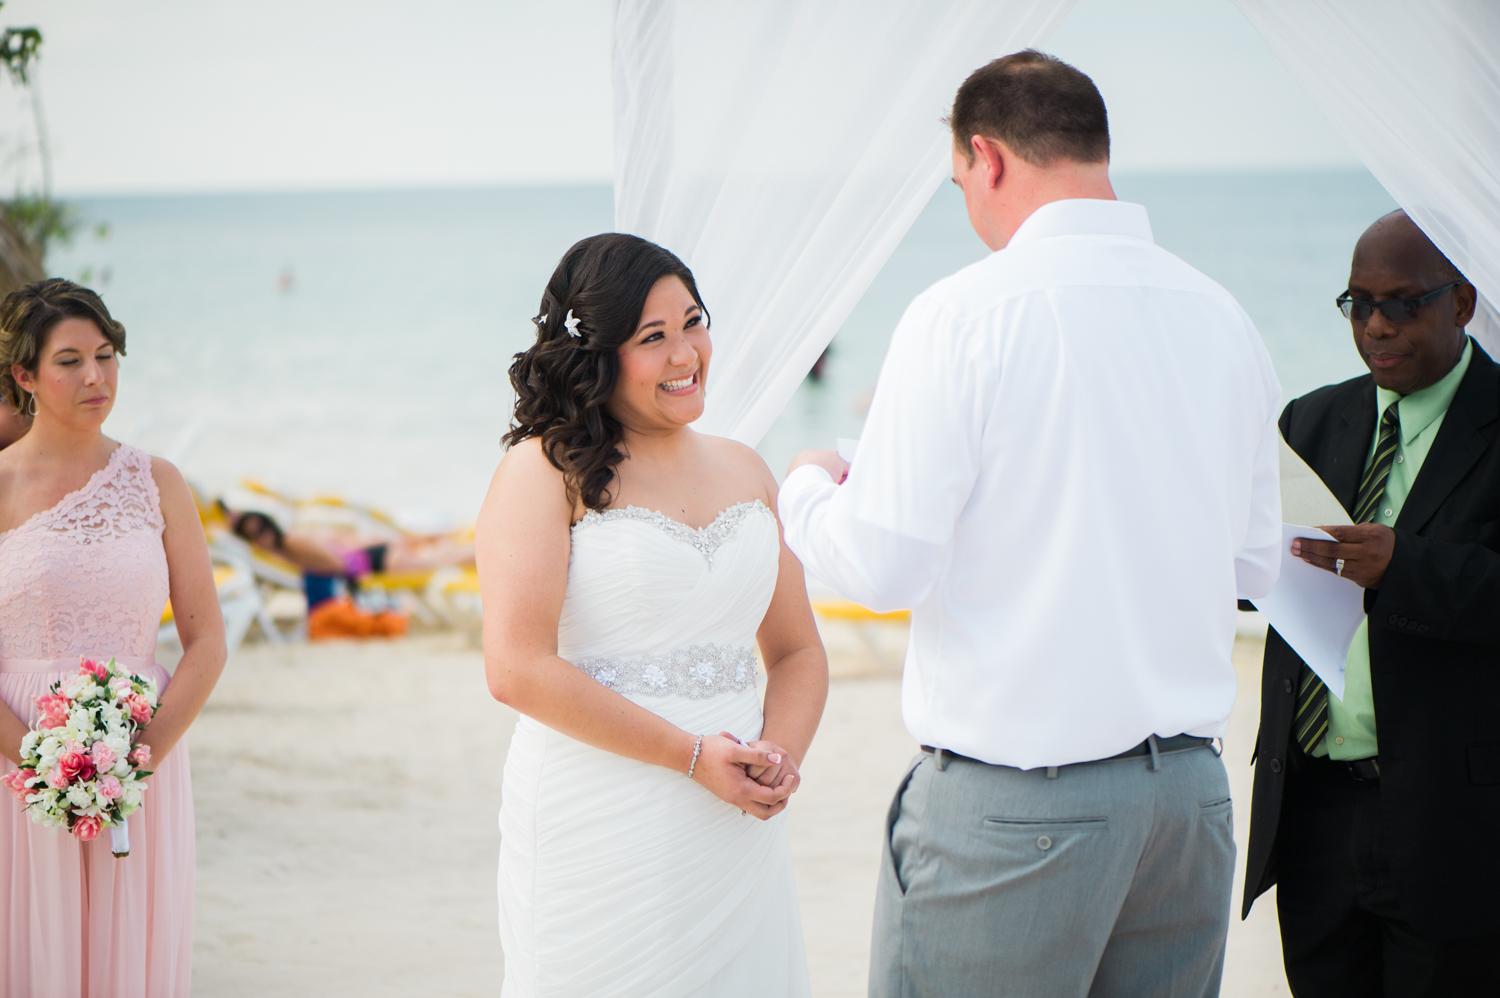 JadeandRyan-Montego-Bay-Jamaica-Wedding-Iberostar-Resort-Beach-54.jpg